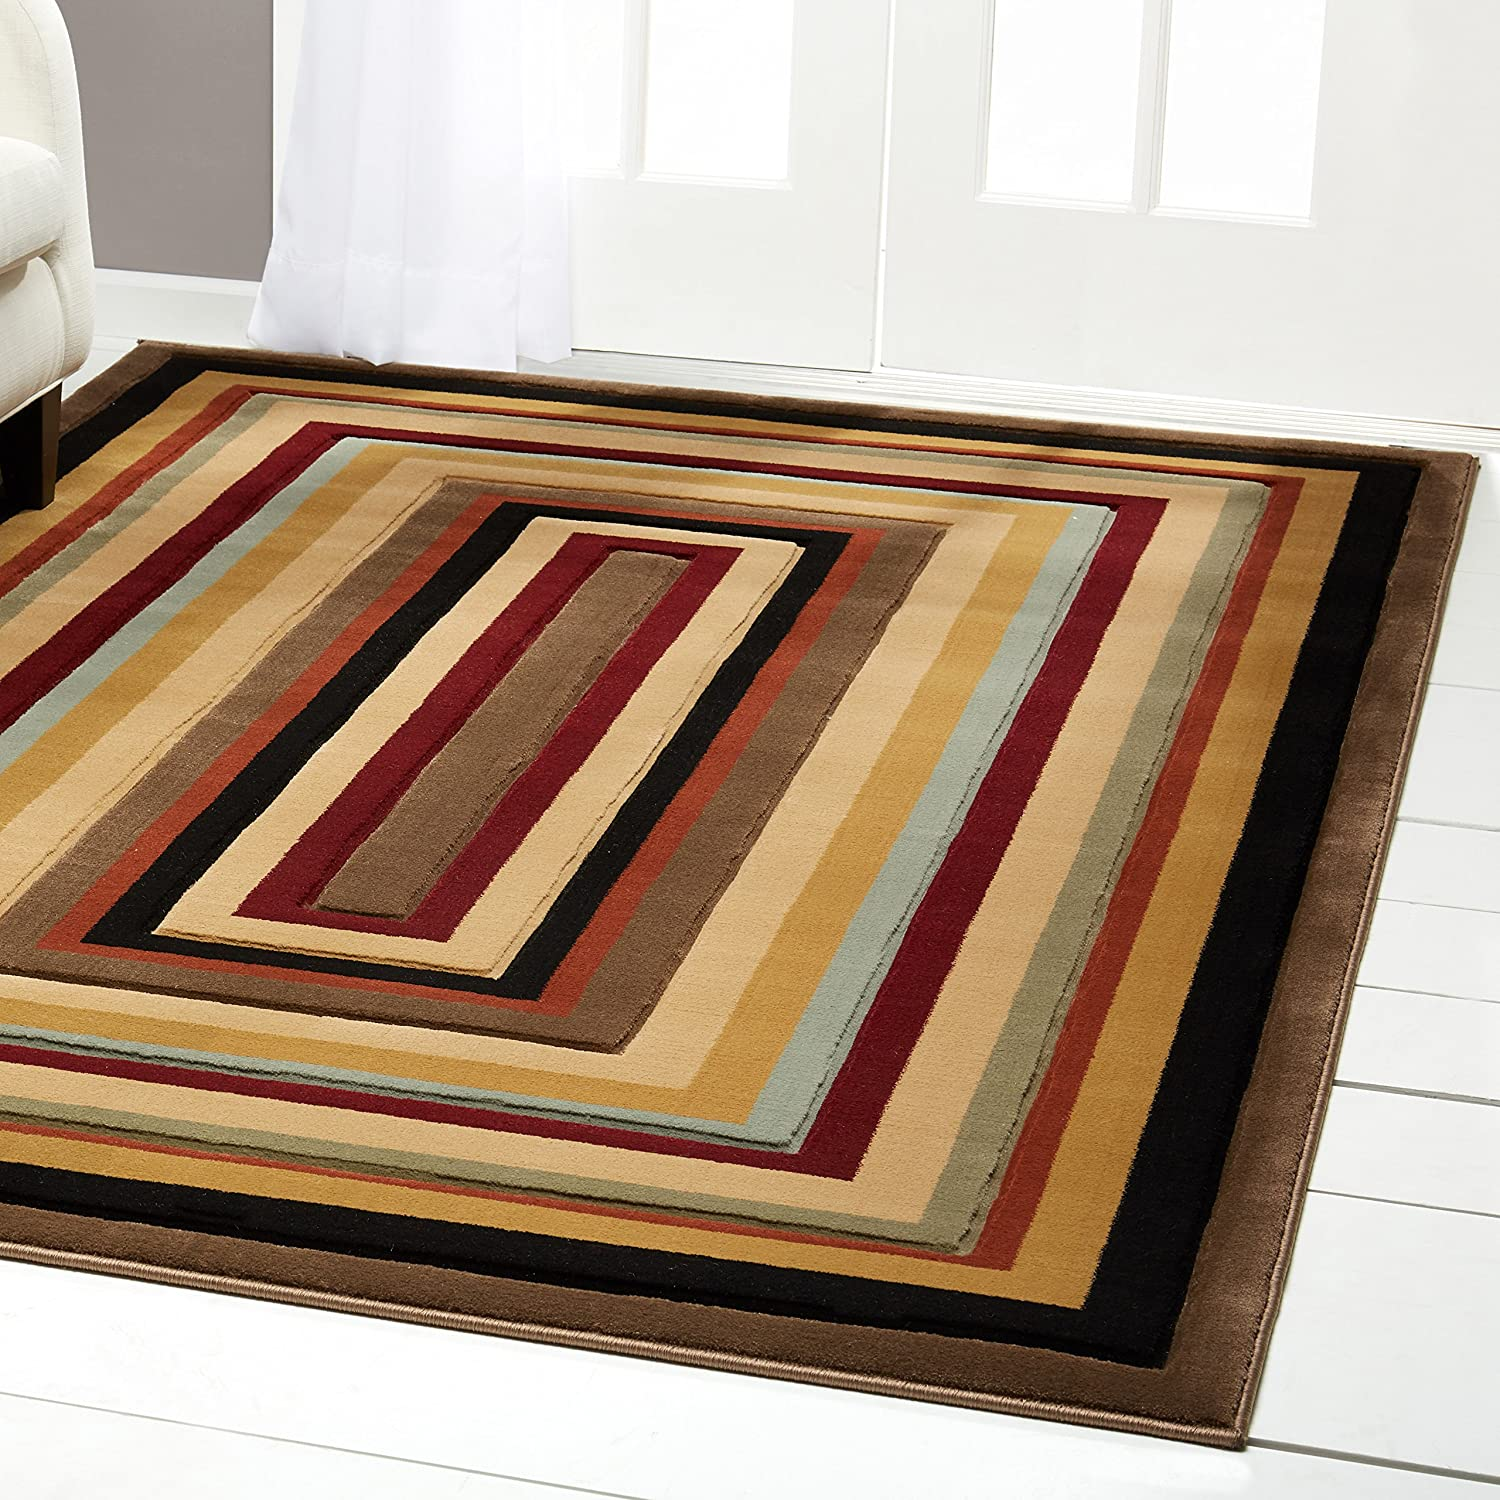 Home dynamix colorful area rug by rectangular pattern modern design indoor rug for the living room dining room bedroom and more soft